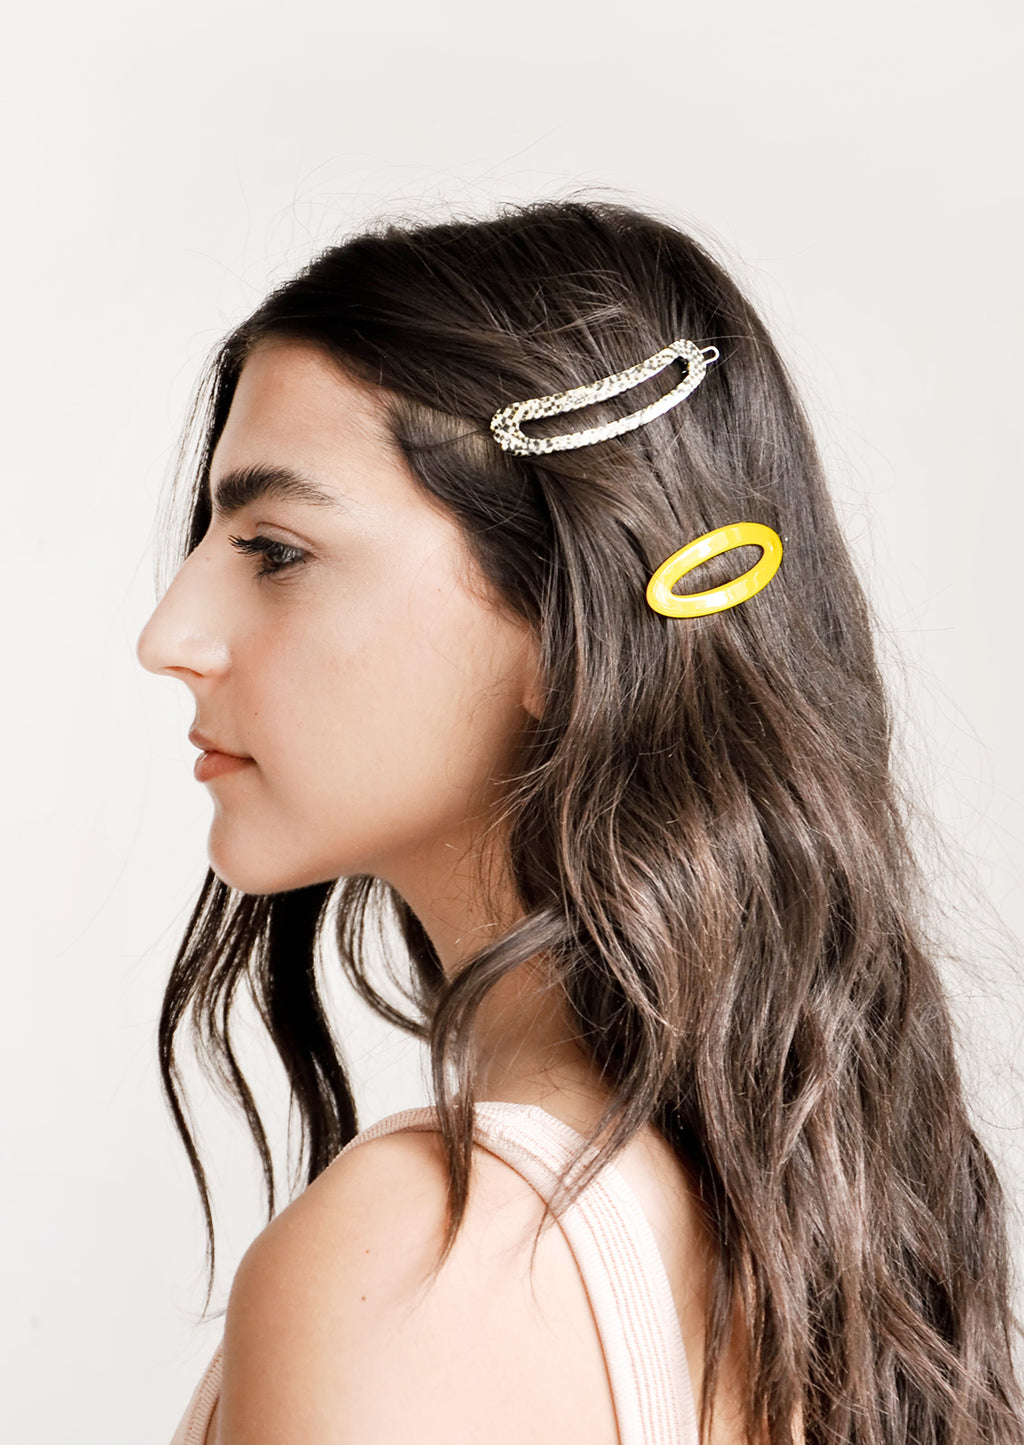 5: Two oval hair clips, one yellow and one white, shown on model